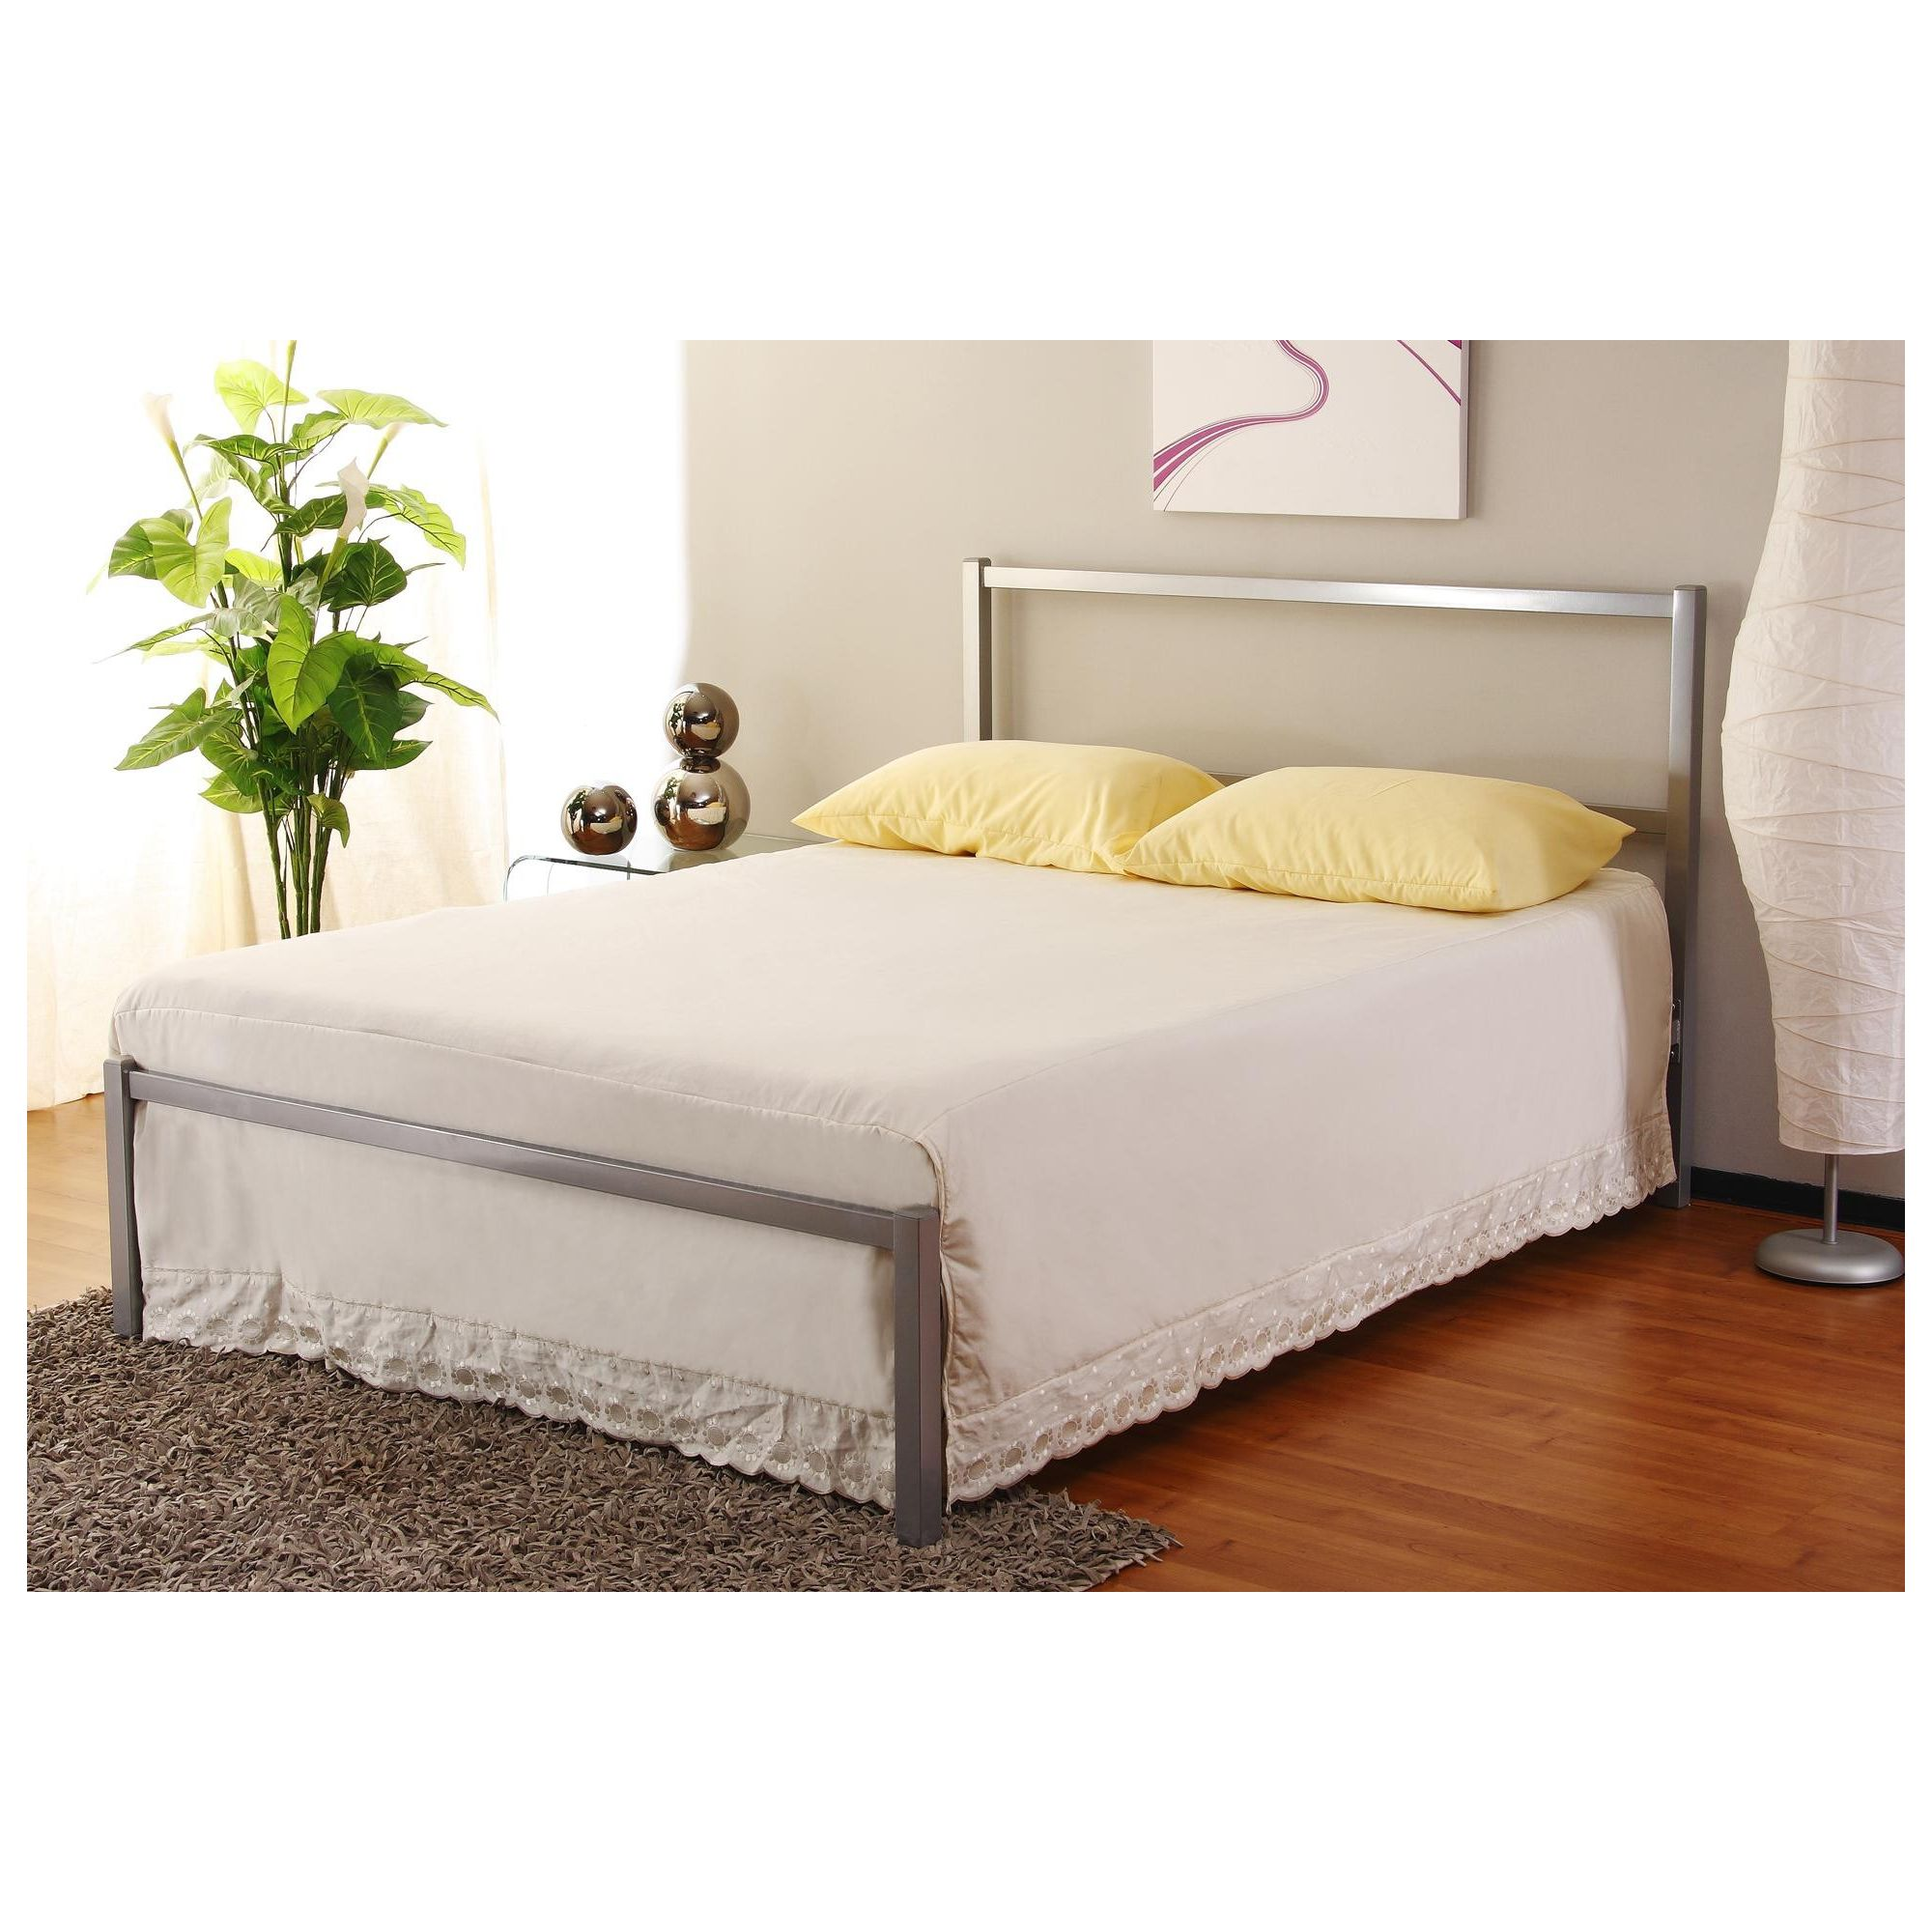 Cheap king size beds platforms for beds trends including for Cheap king size divan beds with storage